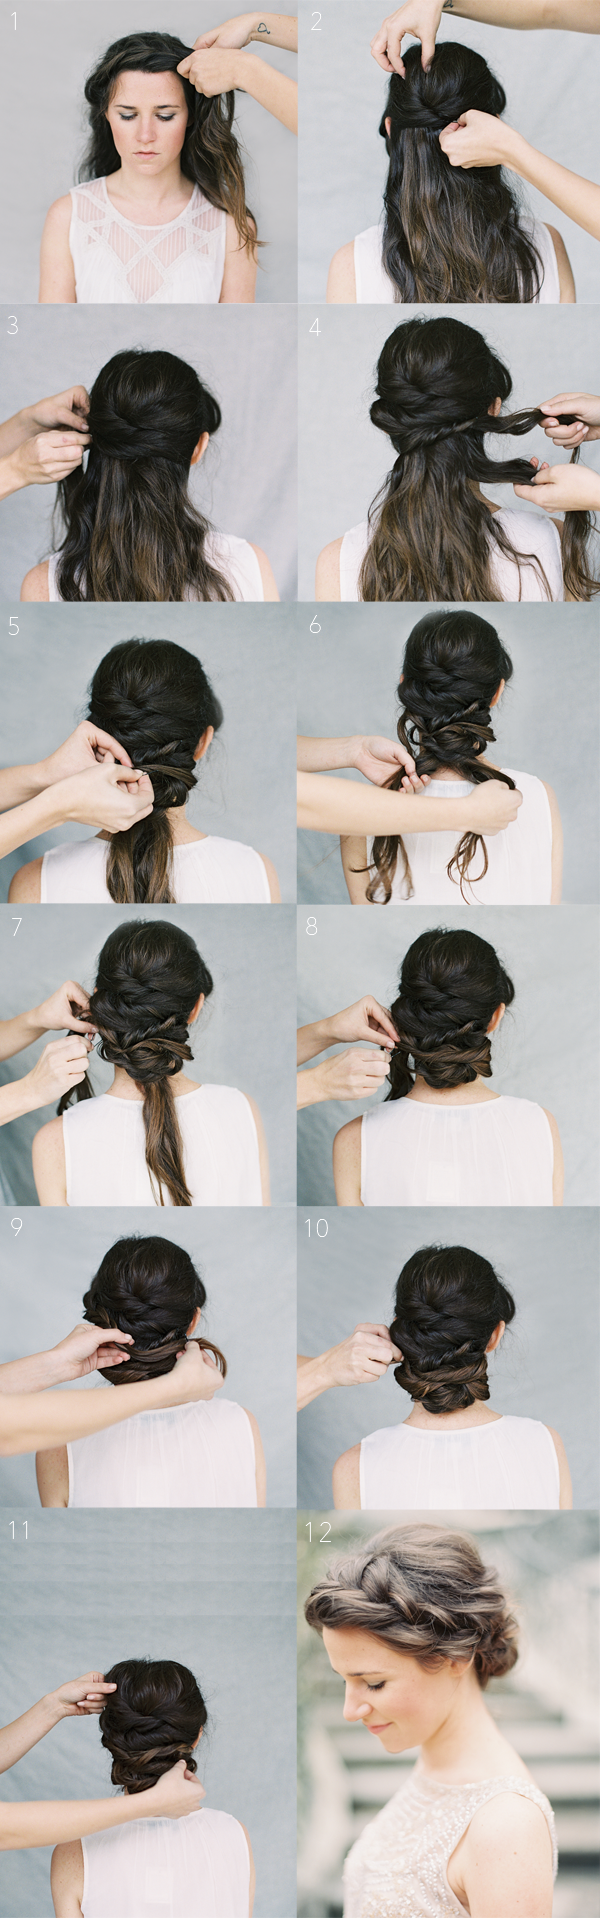 22 Gorgeous Hairstyle Ideas And Tutorials For New Year S Eve Hair Styles Long Hair Styles Hair Beauty